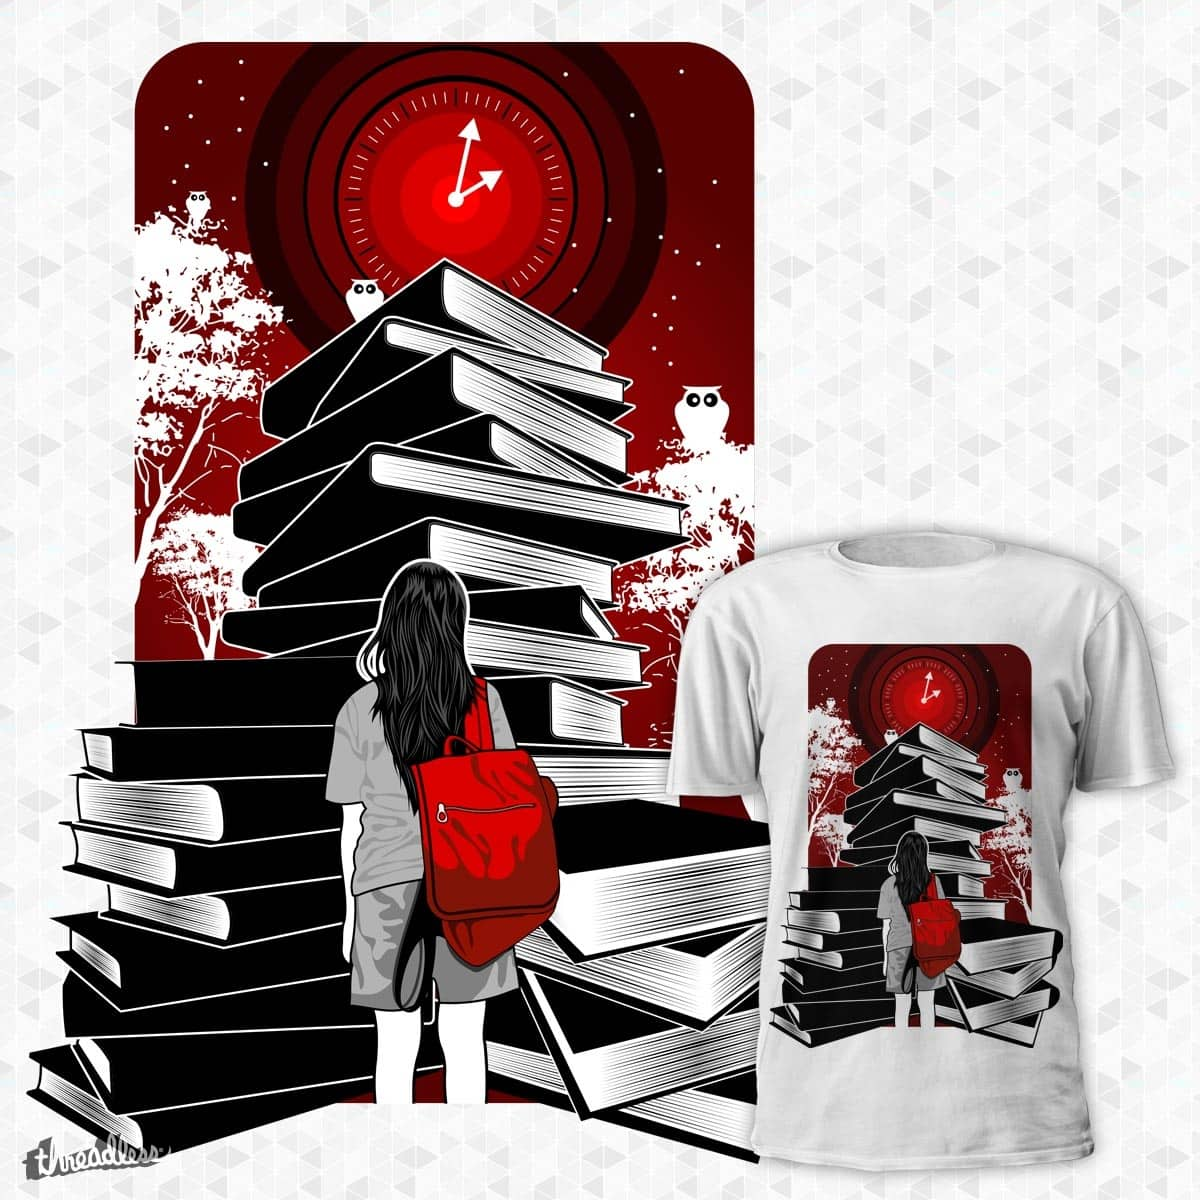 Study Hard by ryanok on Threadless